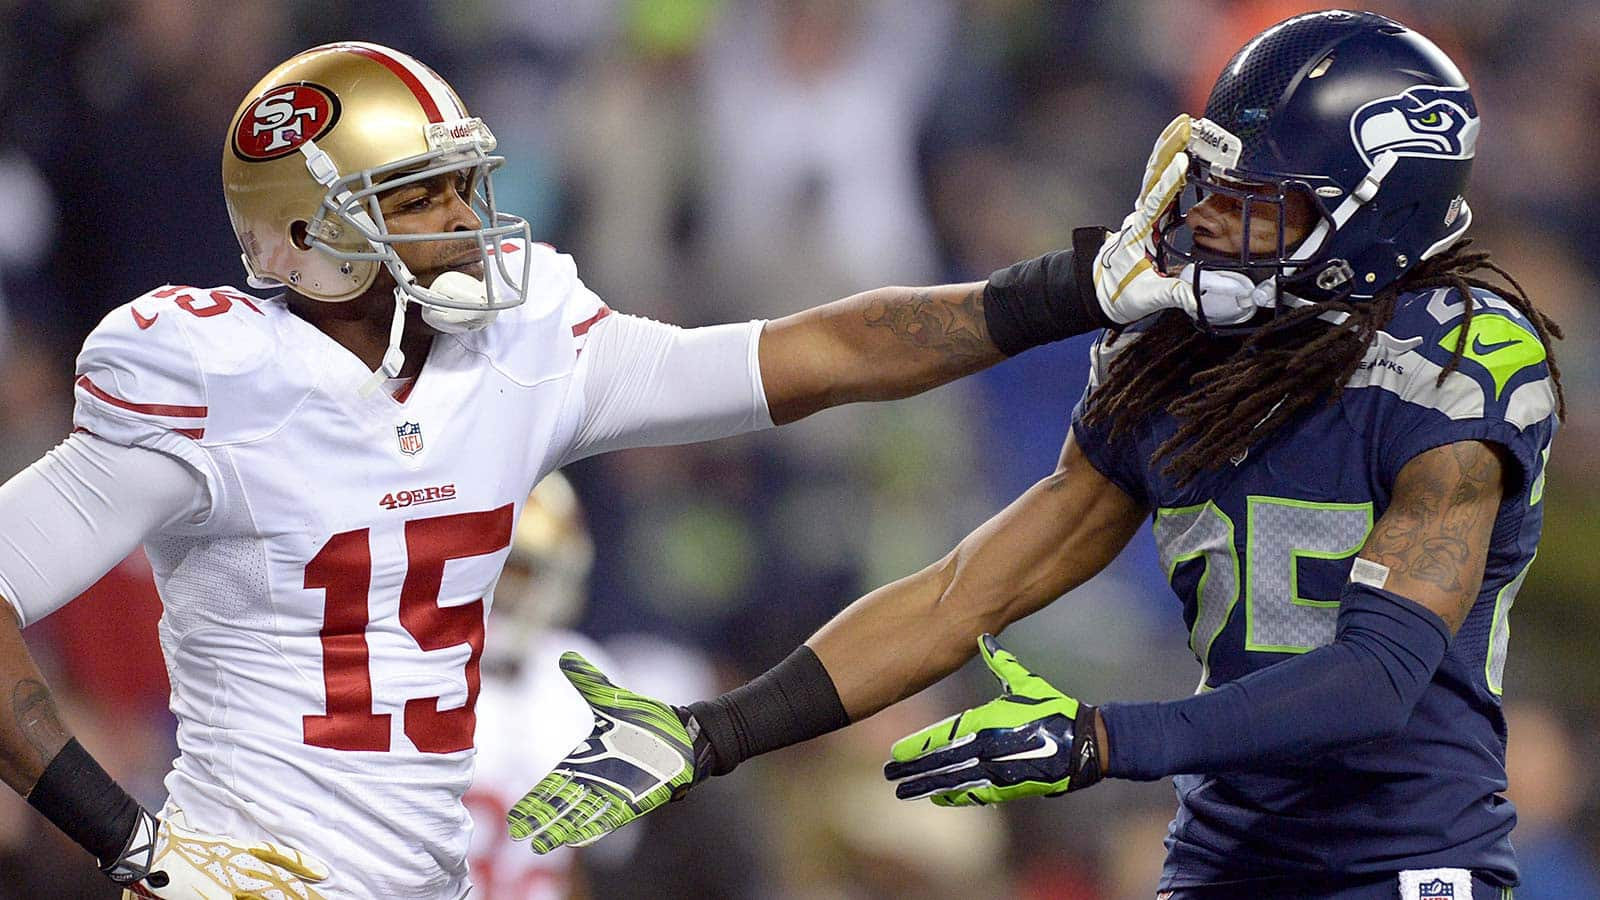 Richard Sherman meets with 49ers, signals free-agent tour has just begun